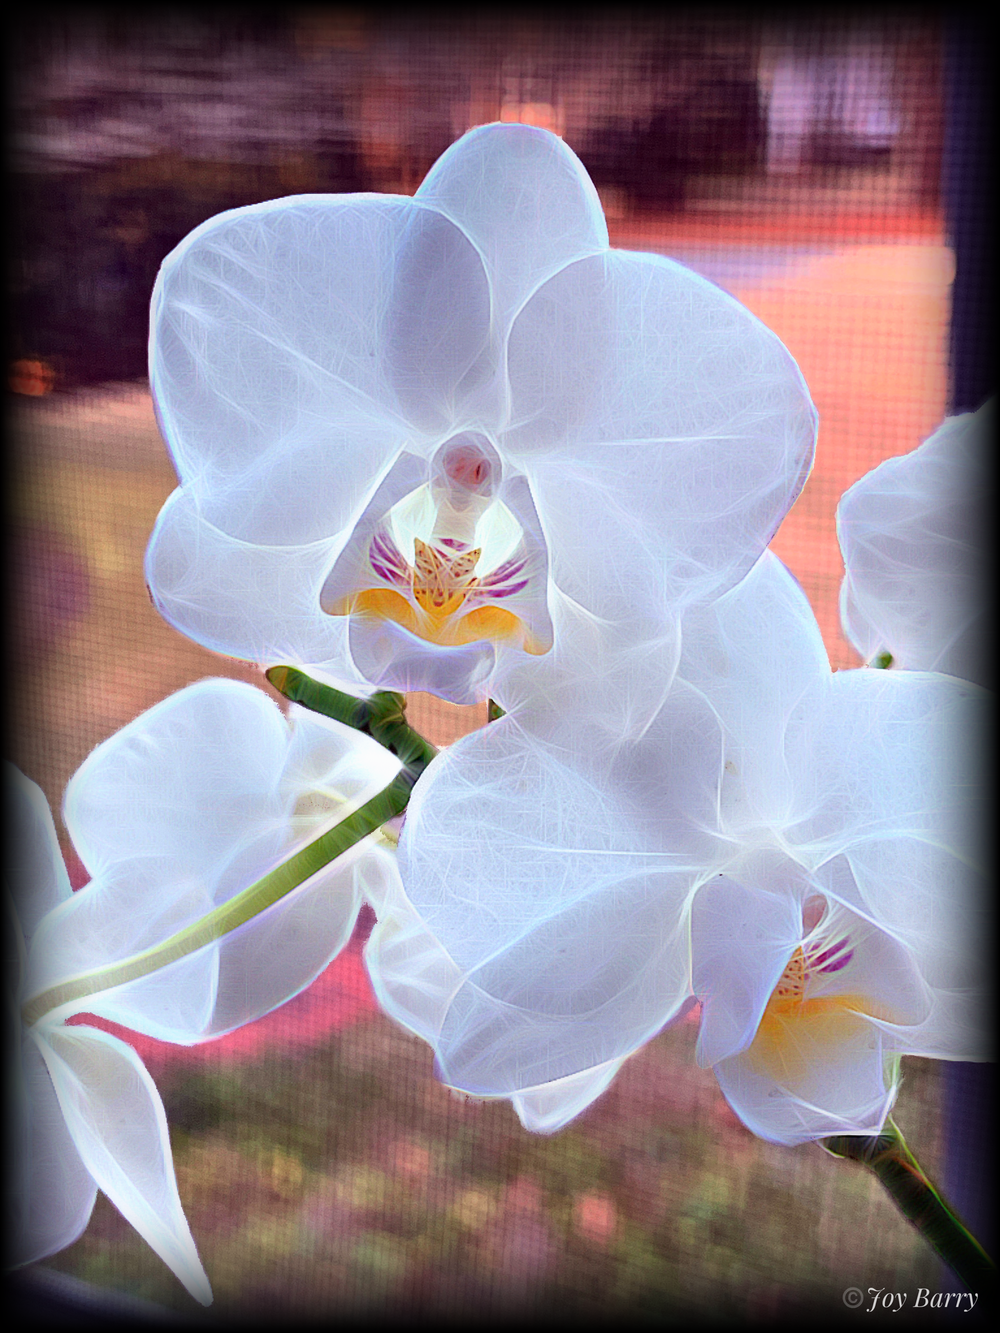 March 28, 2019 - The reverence of the white orchid.